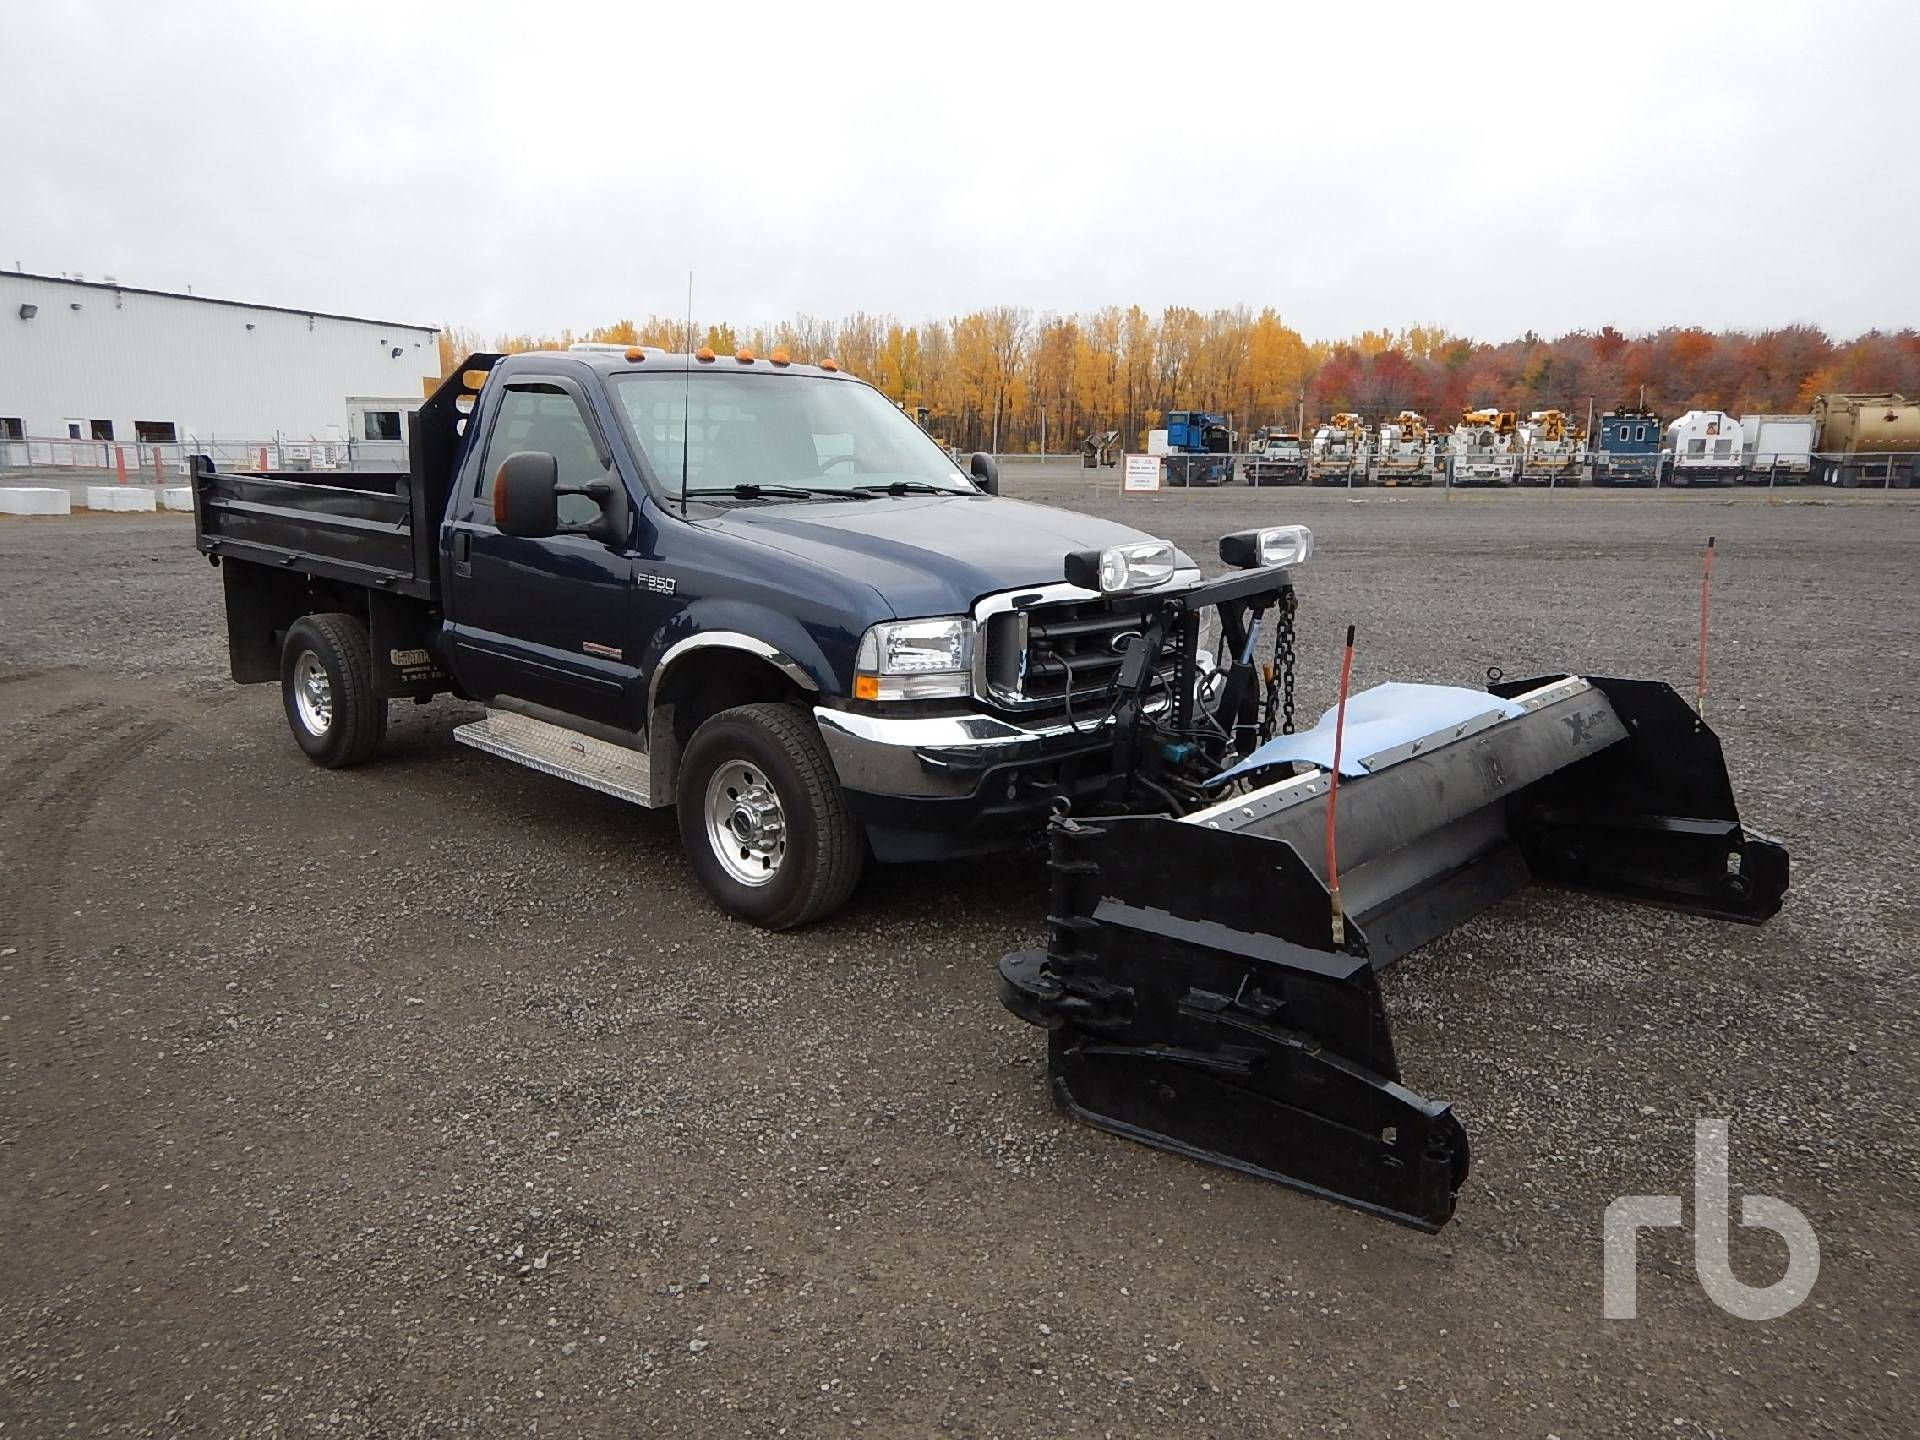 2003 ford f350 4x4 plow dump truck ritchie bros auctioneers snow plow and sander. Black Bedroom Furniture Sets. Home Design Ideas